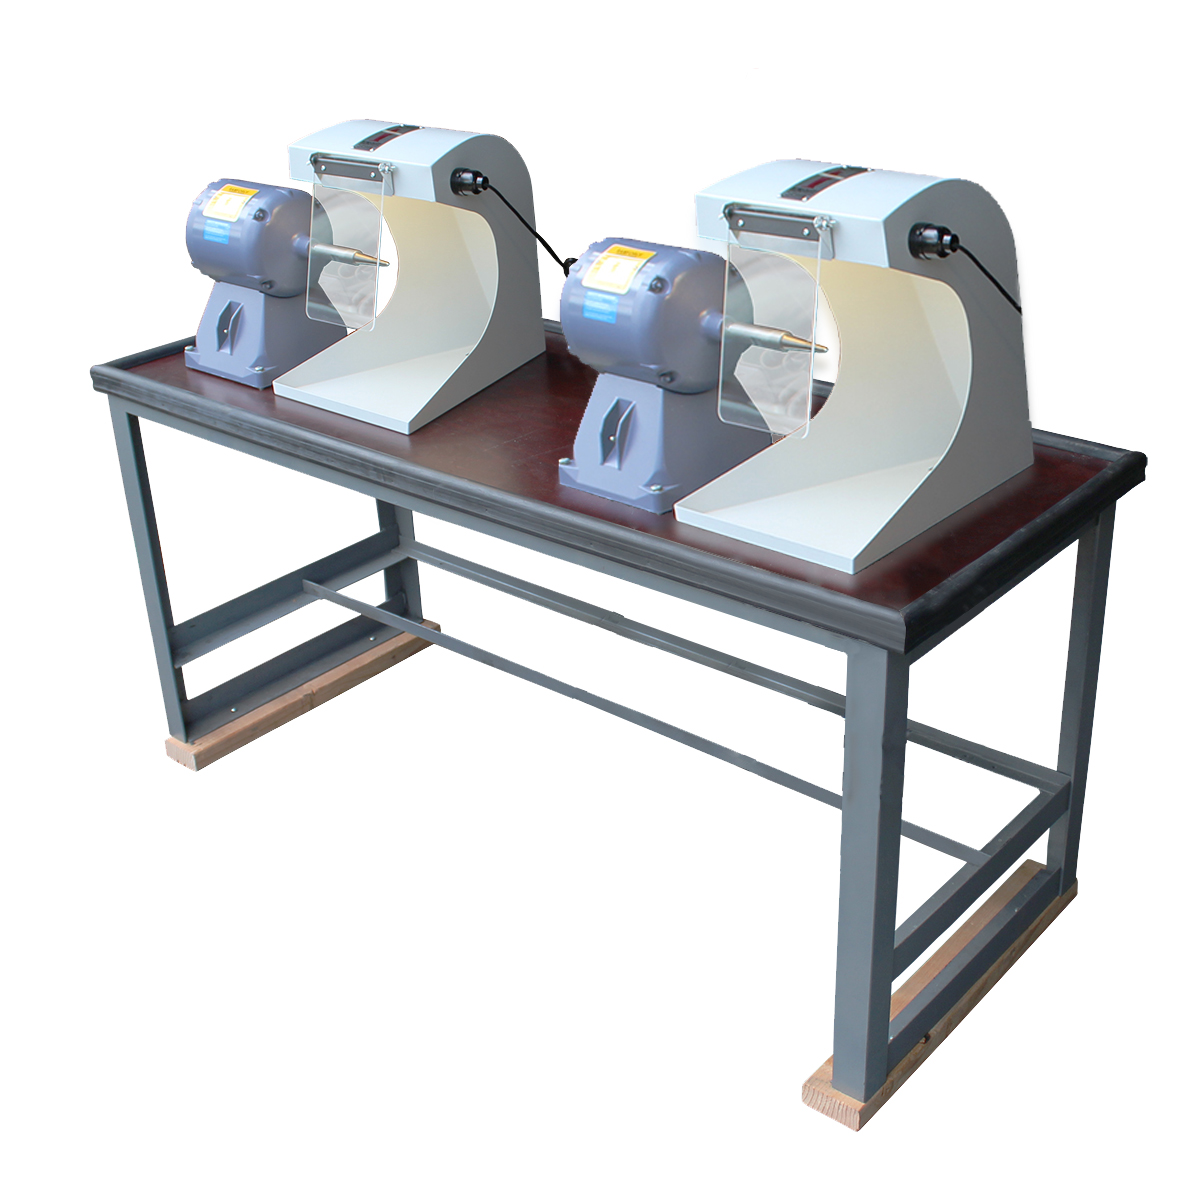 Polishing Bench Systems - 2 Polishing Motors - 110V/220V